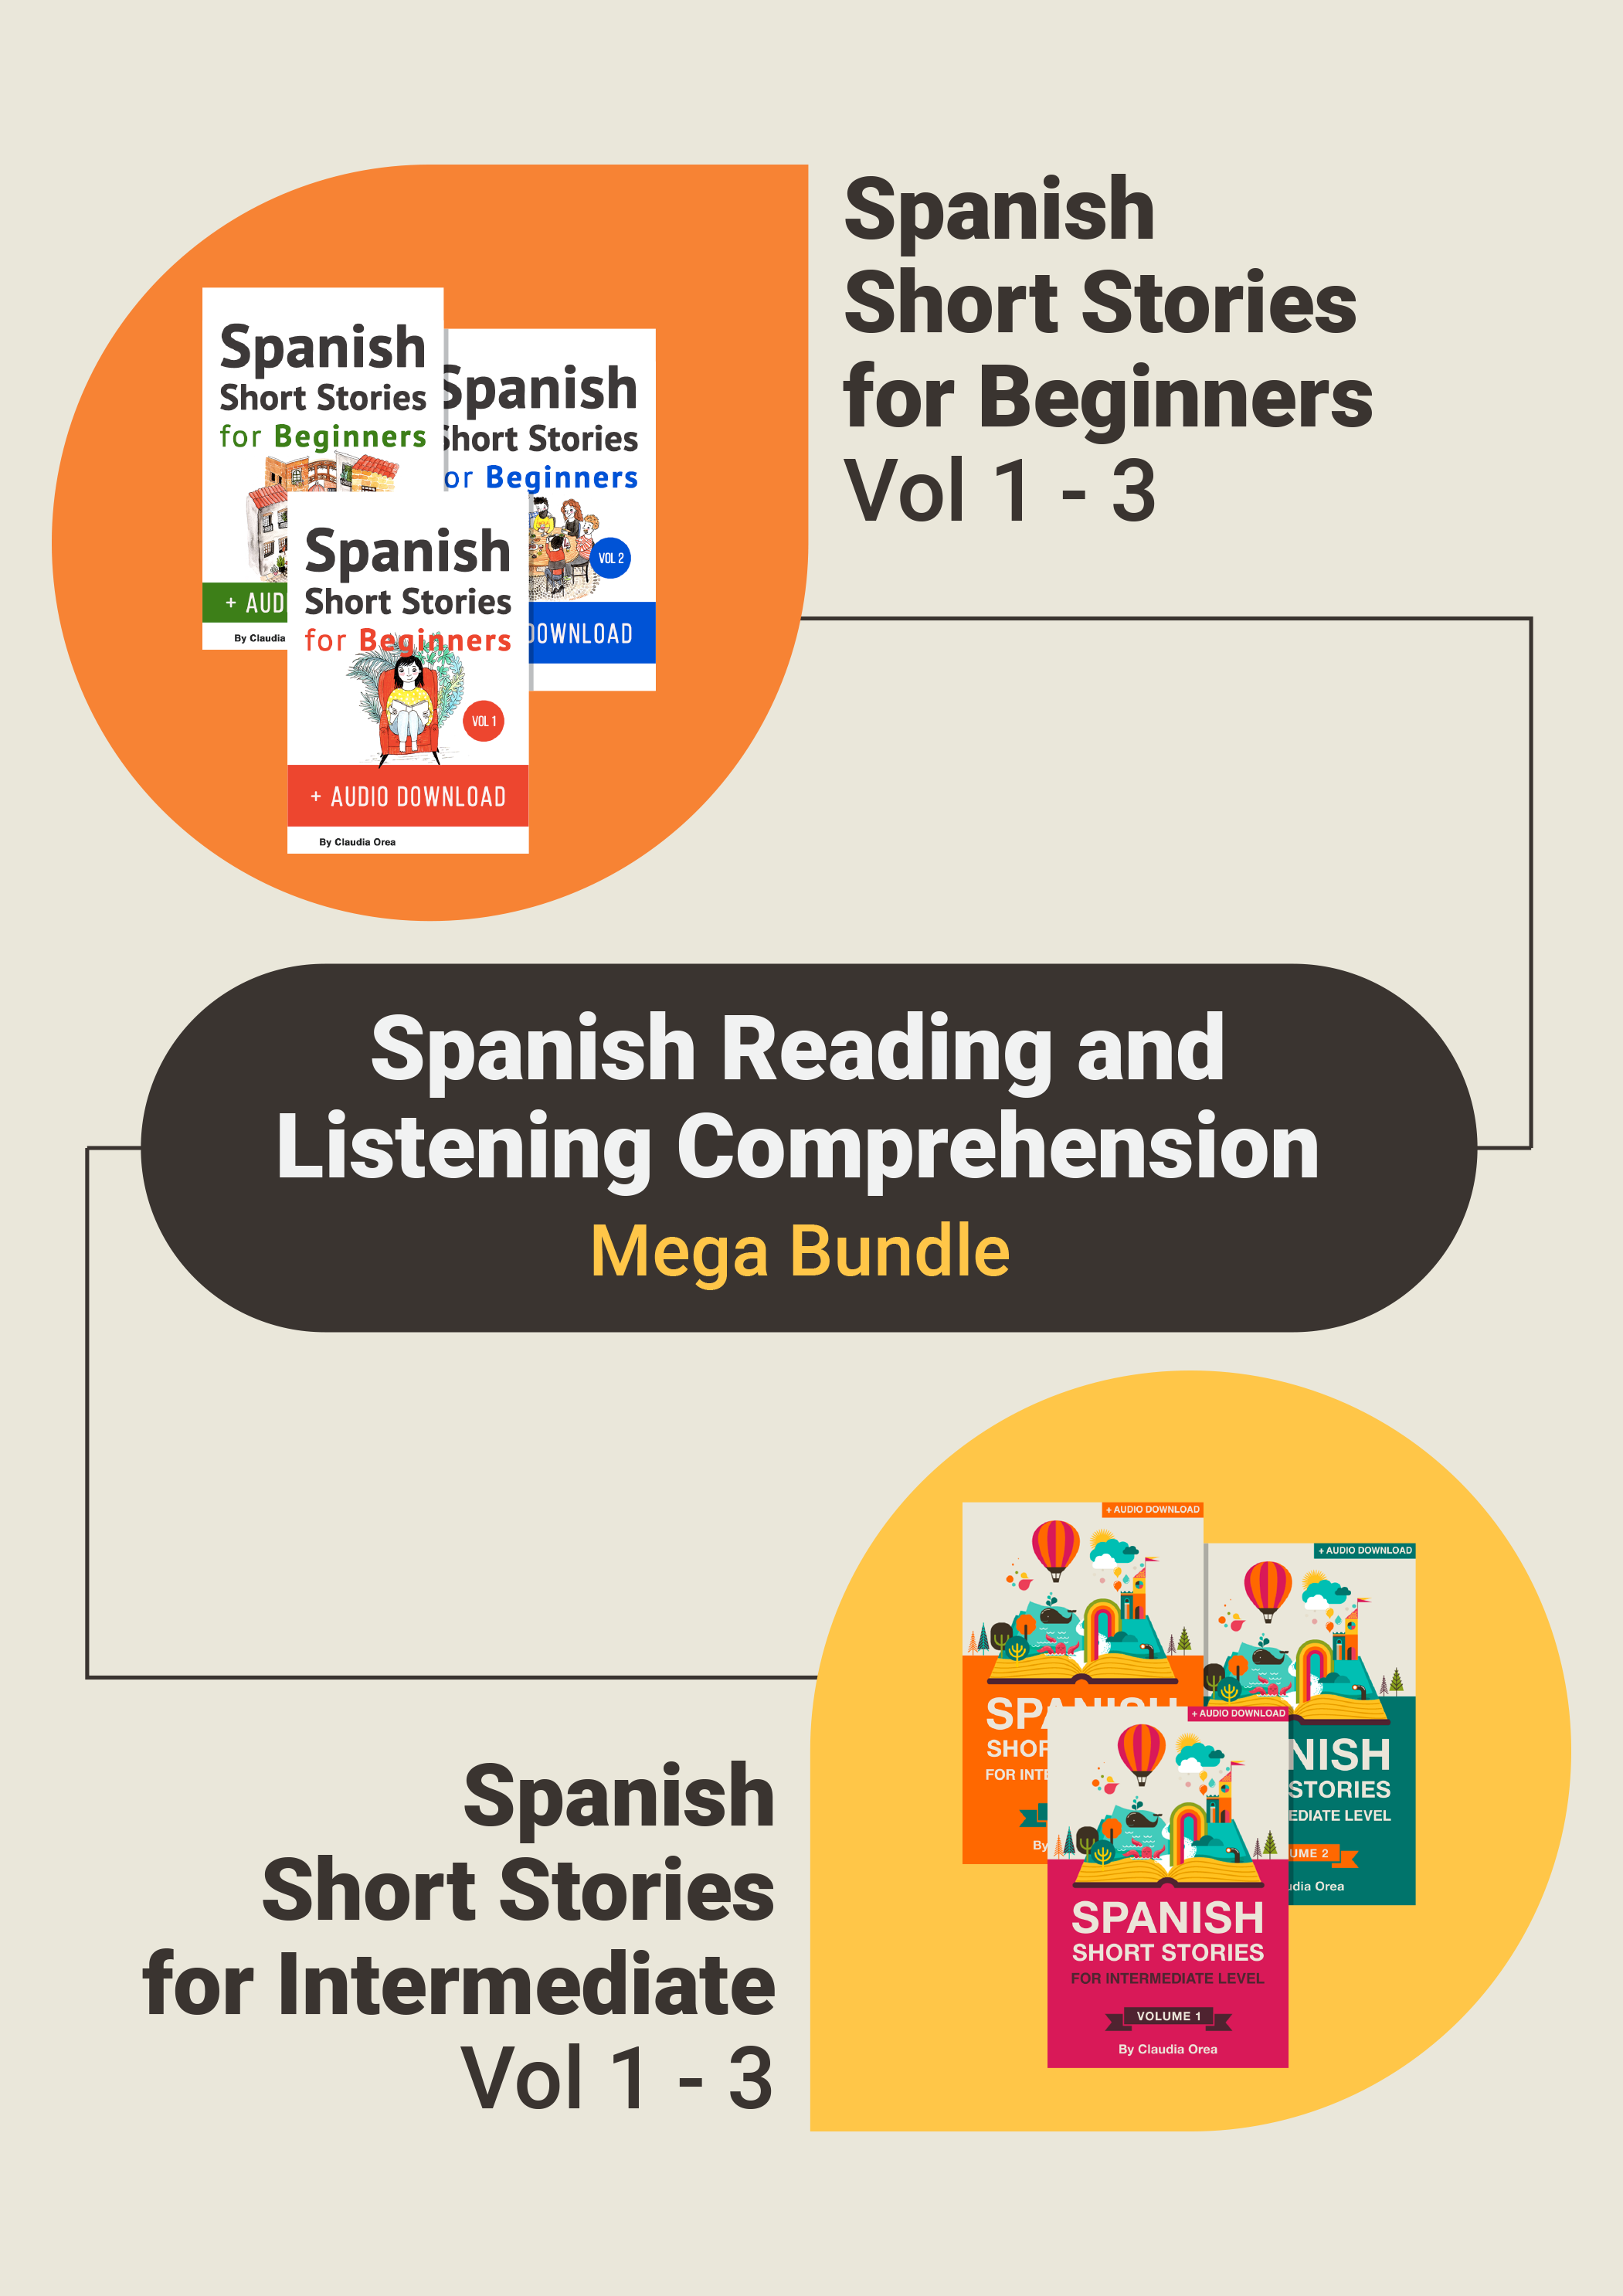 Spanish Reading and Listening Mega Bundle: Boost Your Comprehension Skills  with this 6-Volume Short Stories Pack